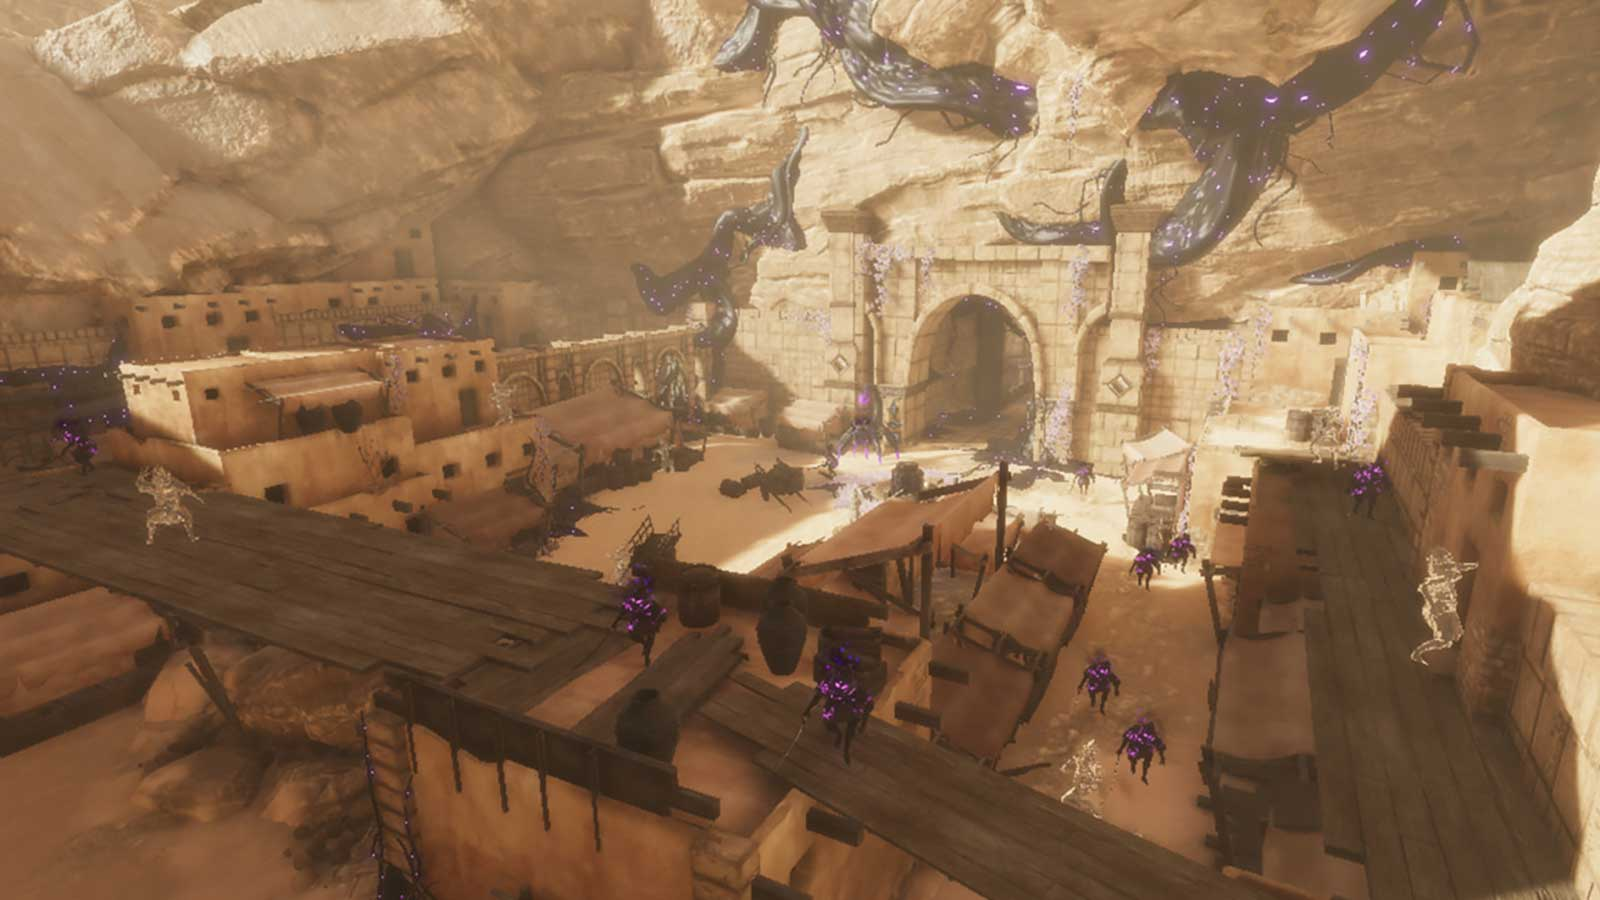 Overhead view of a desert marketplace filled with enemies